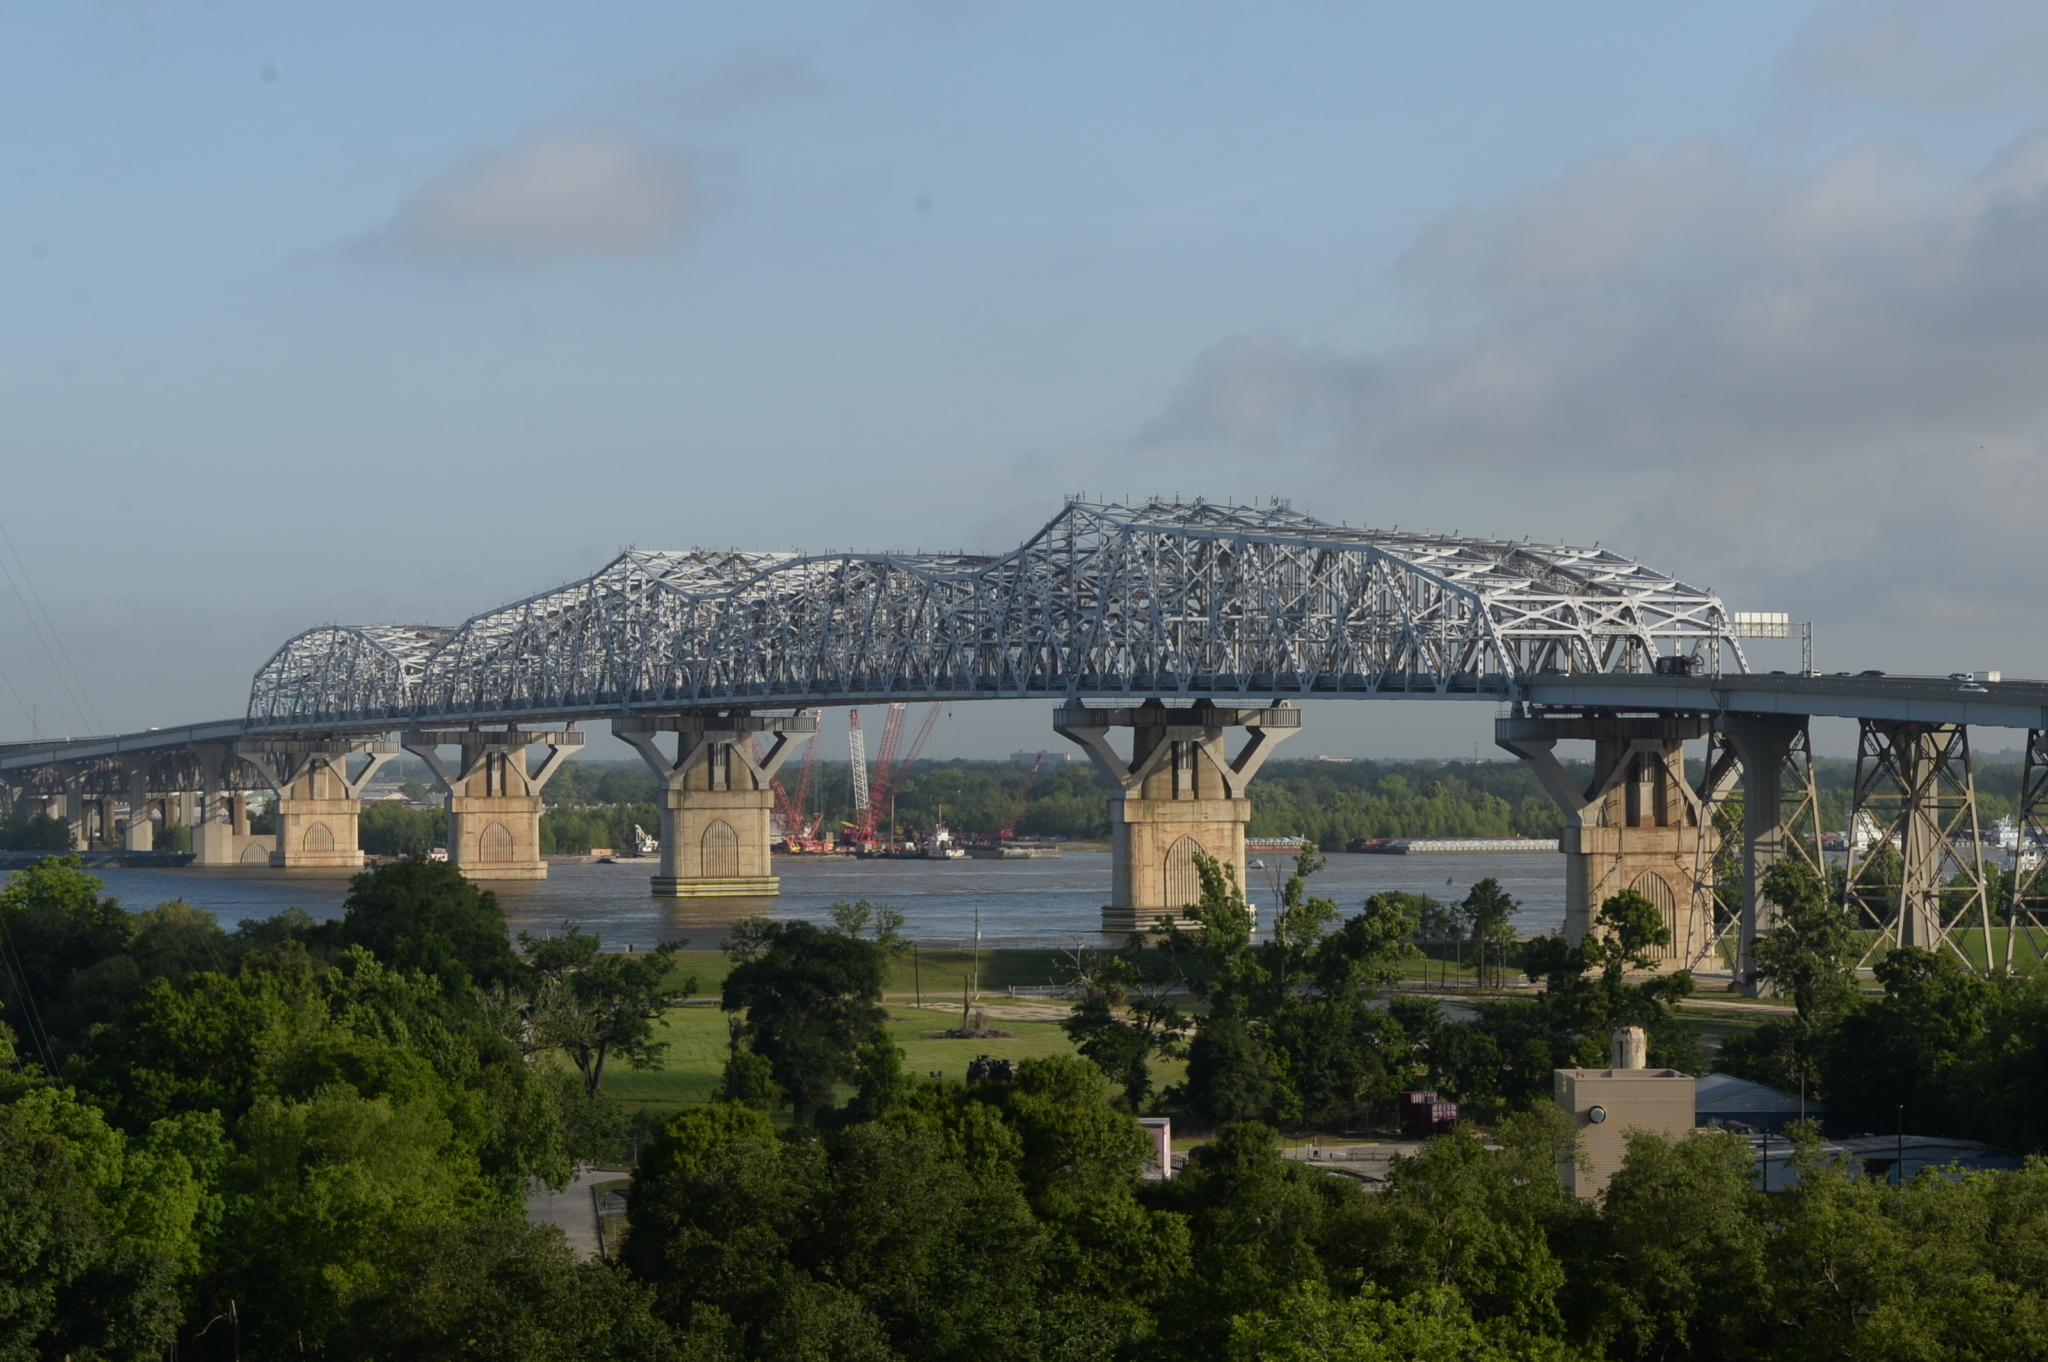 Huey P Long Bridge